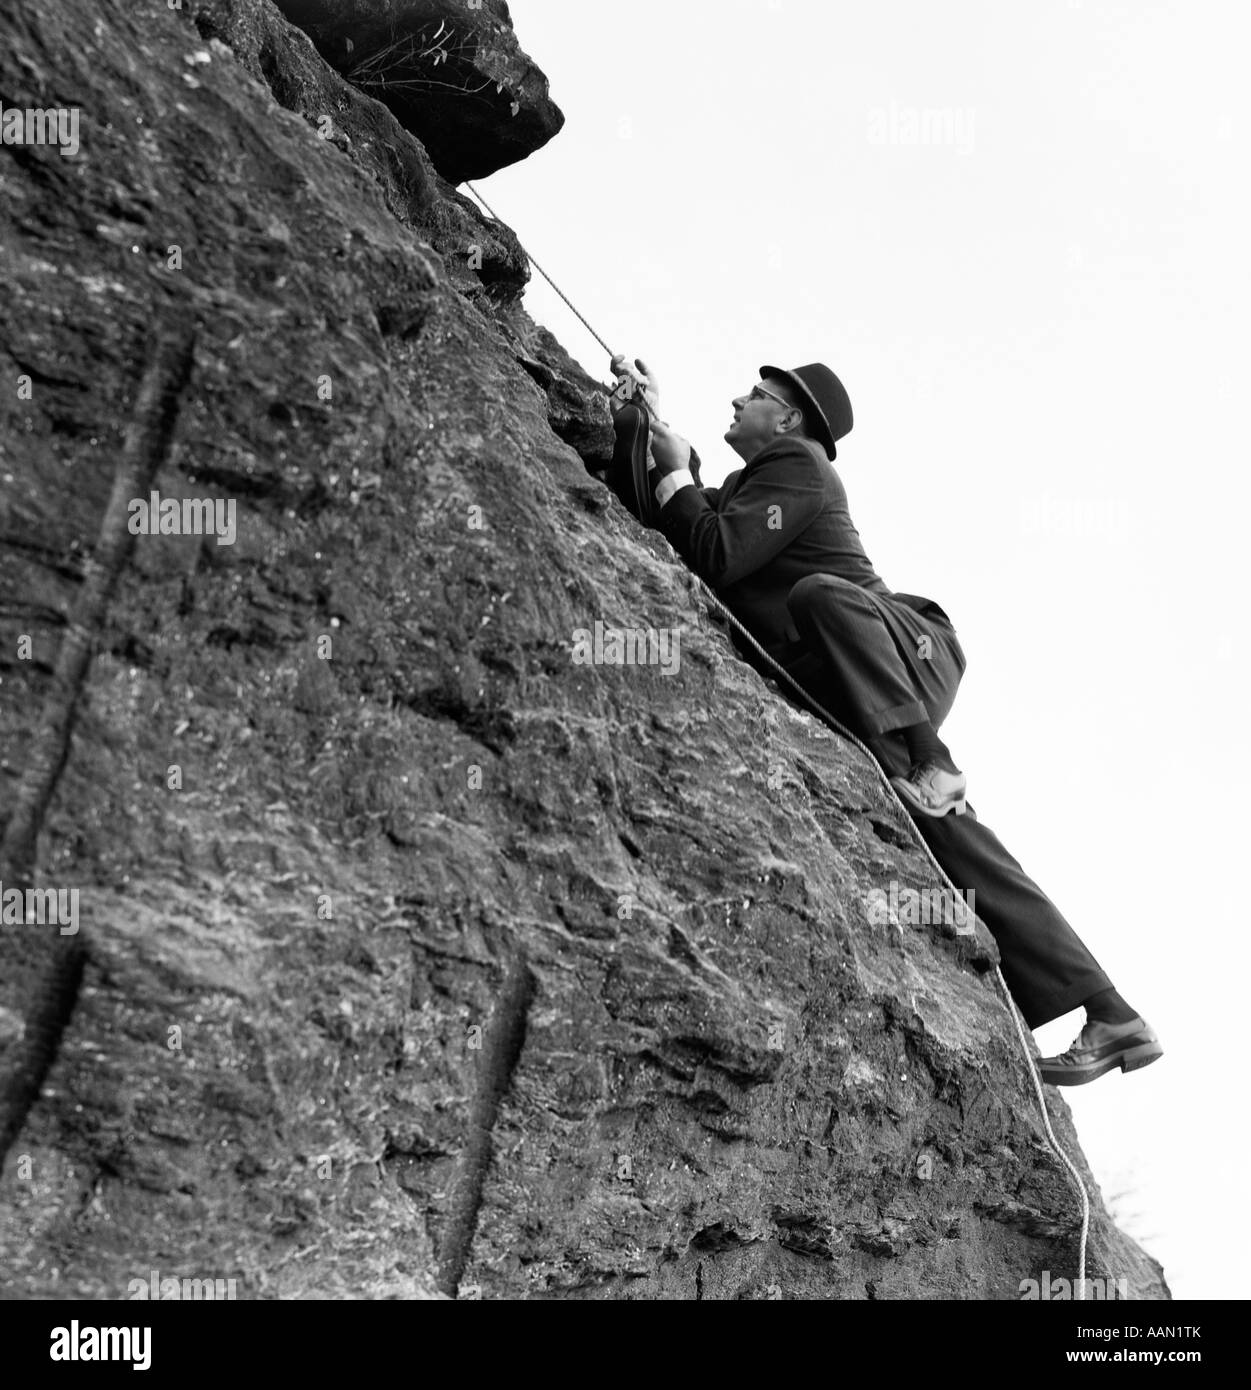 1960s BUSINESSMAN IN HAT & SUIT CLIMBING ROCK HOLDING ROPE - Stock Image